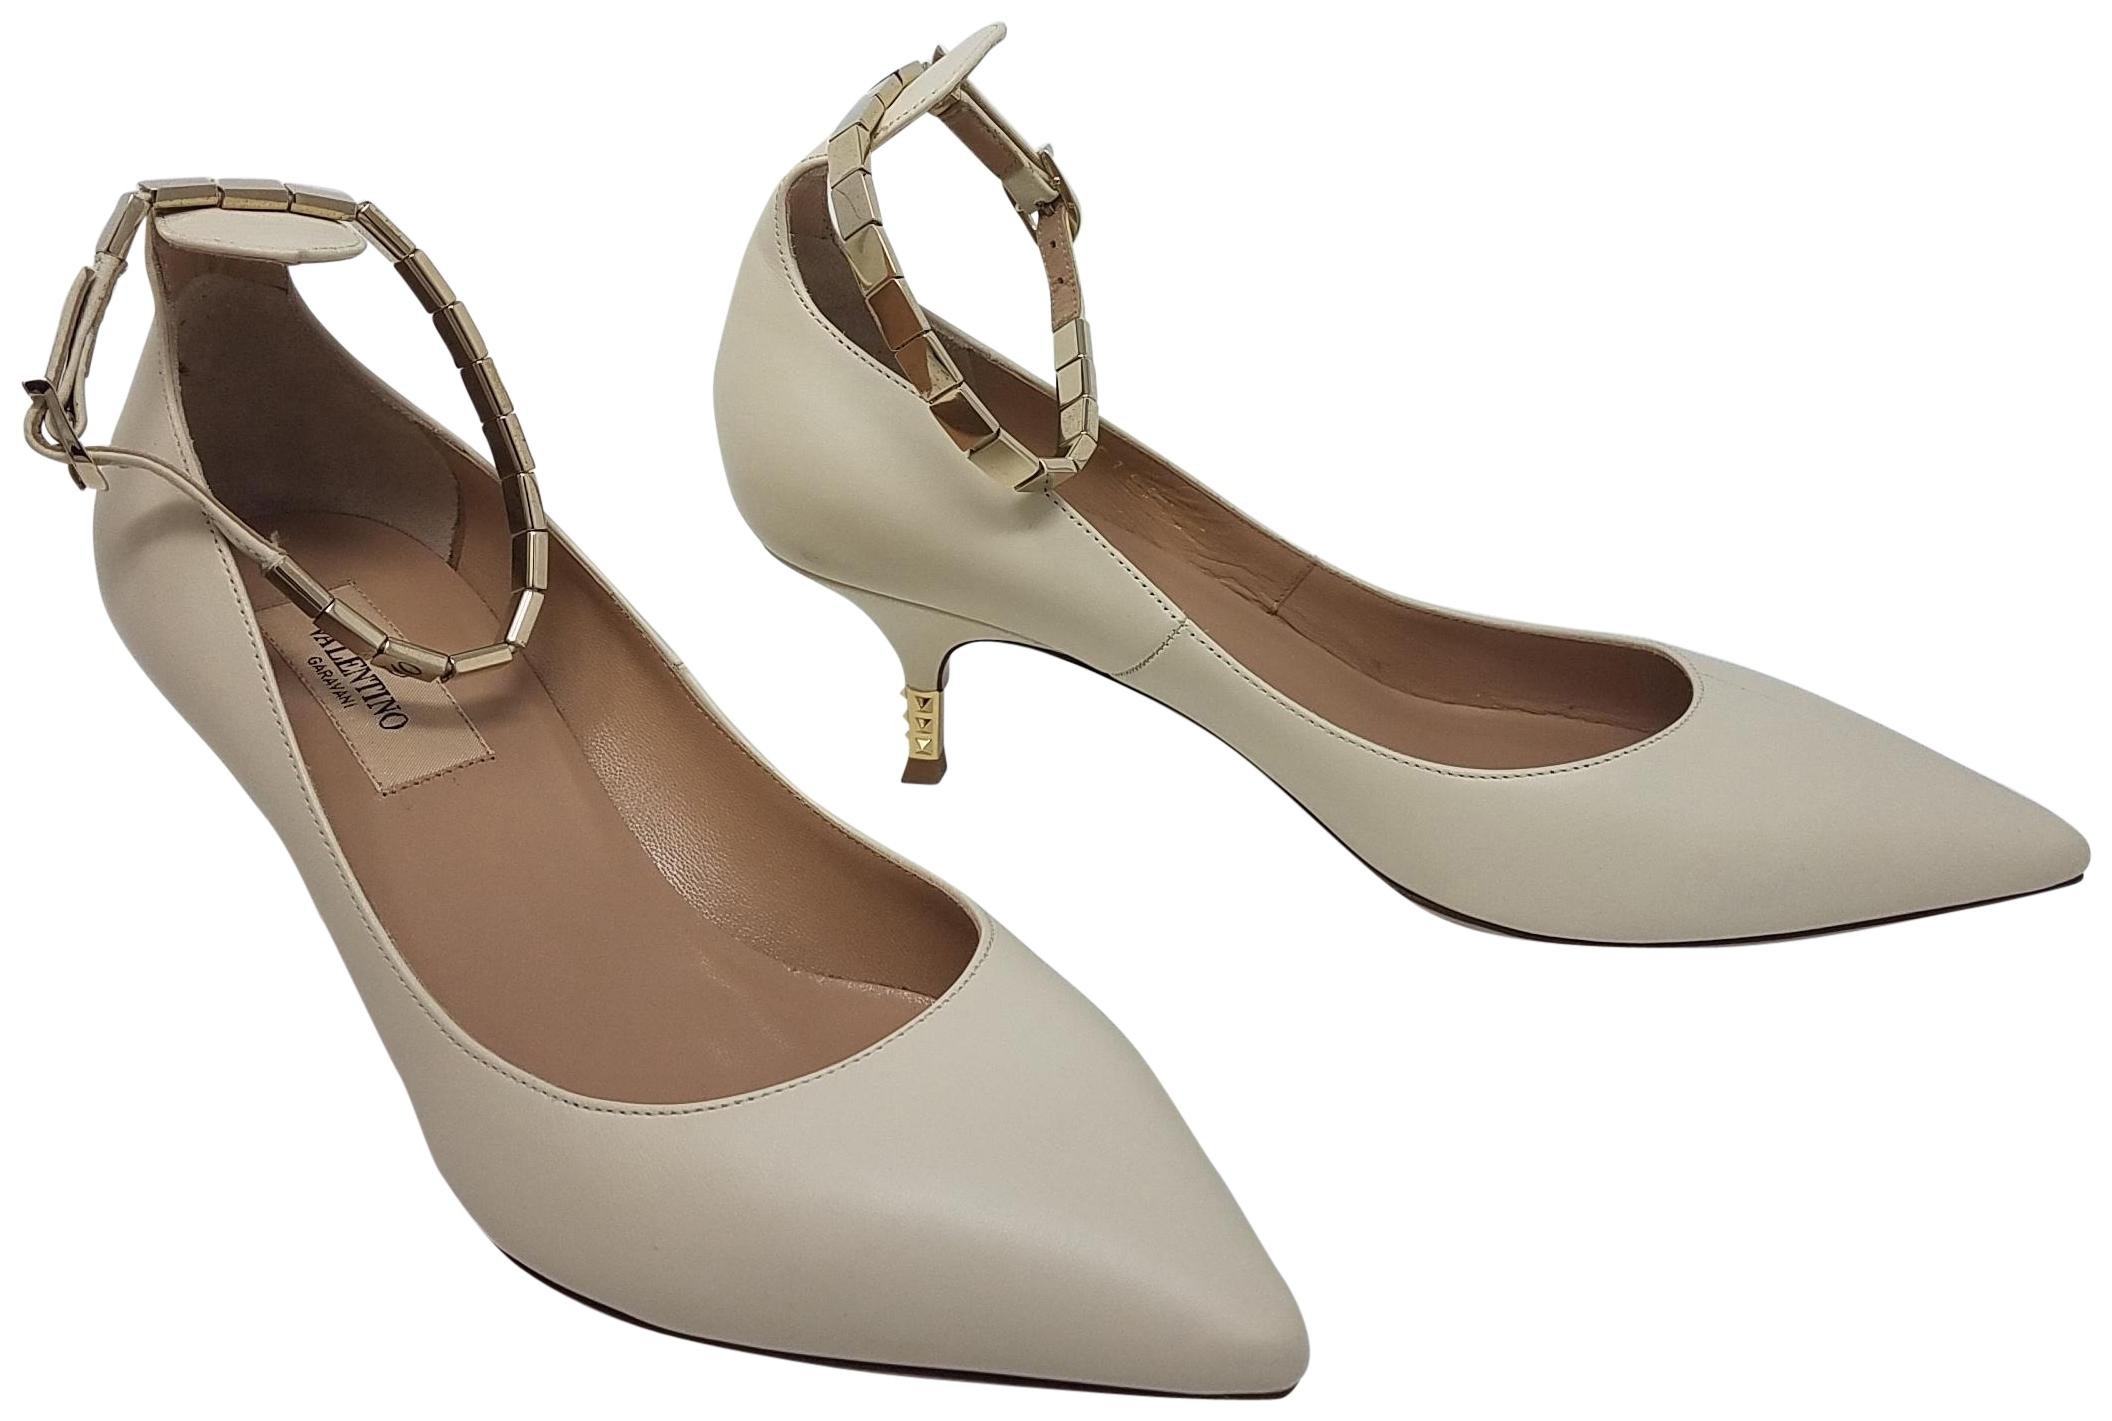 2ae2db296e4 Valentino White Gold Ivory Leather Gold-tone Anle Anle Anle Chain  Pointed-toe Pumps Size EU 37 (Approx. US 7) Regular (M